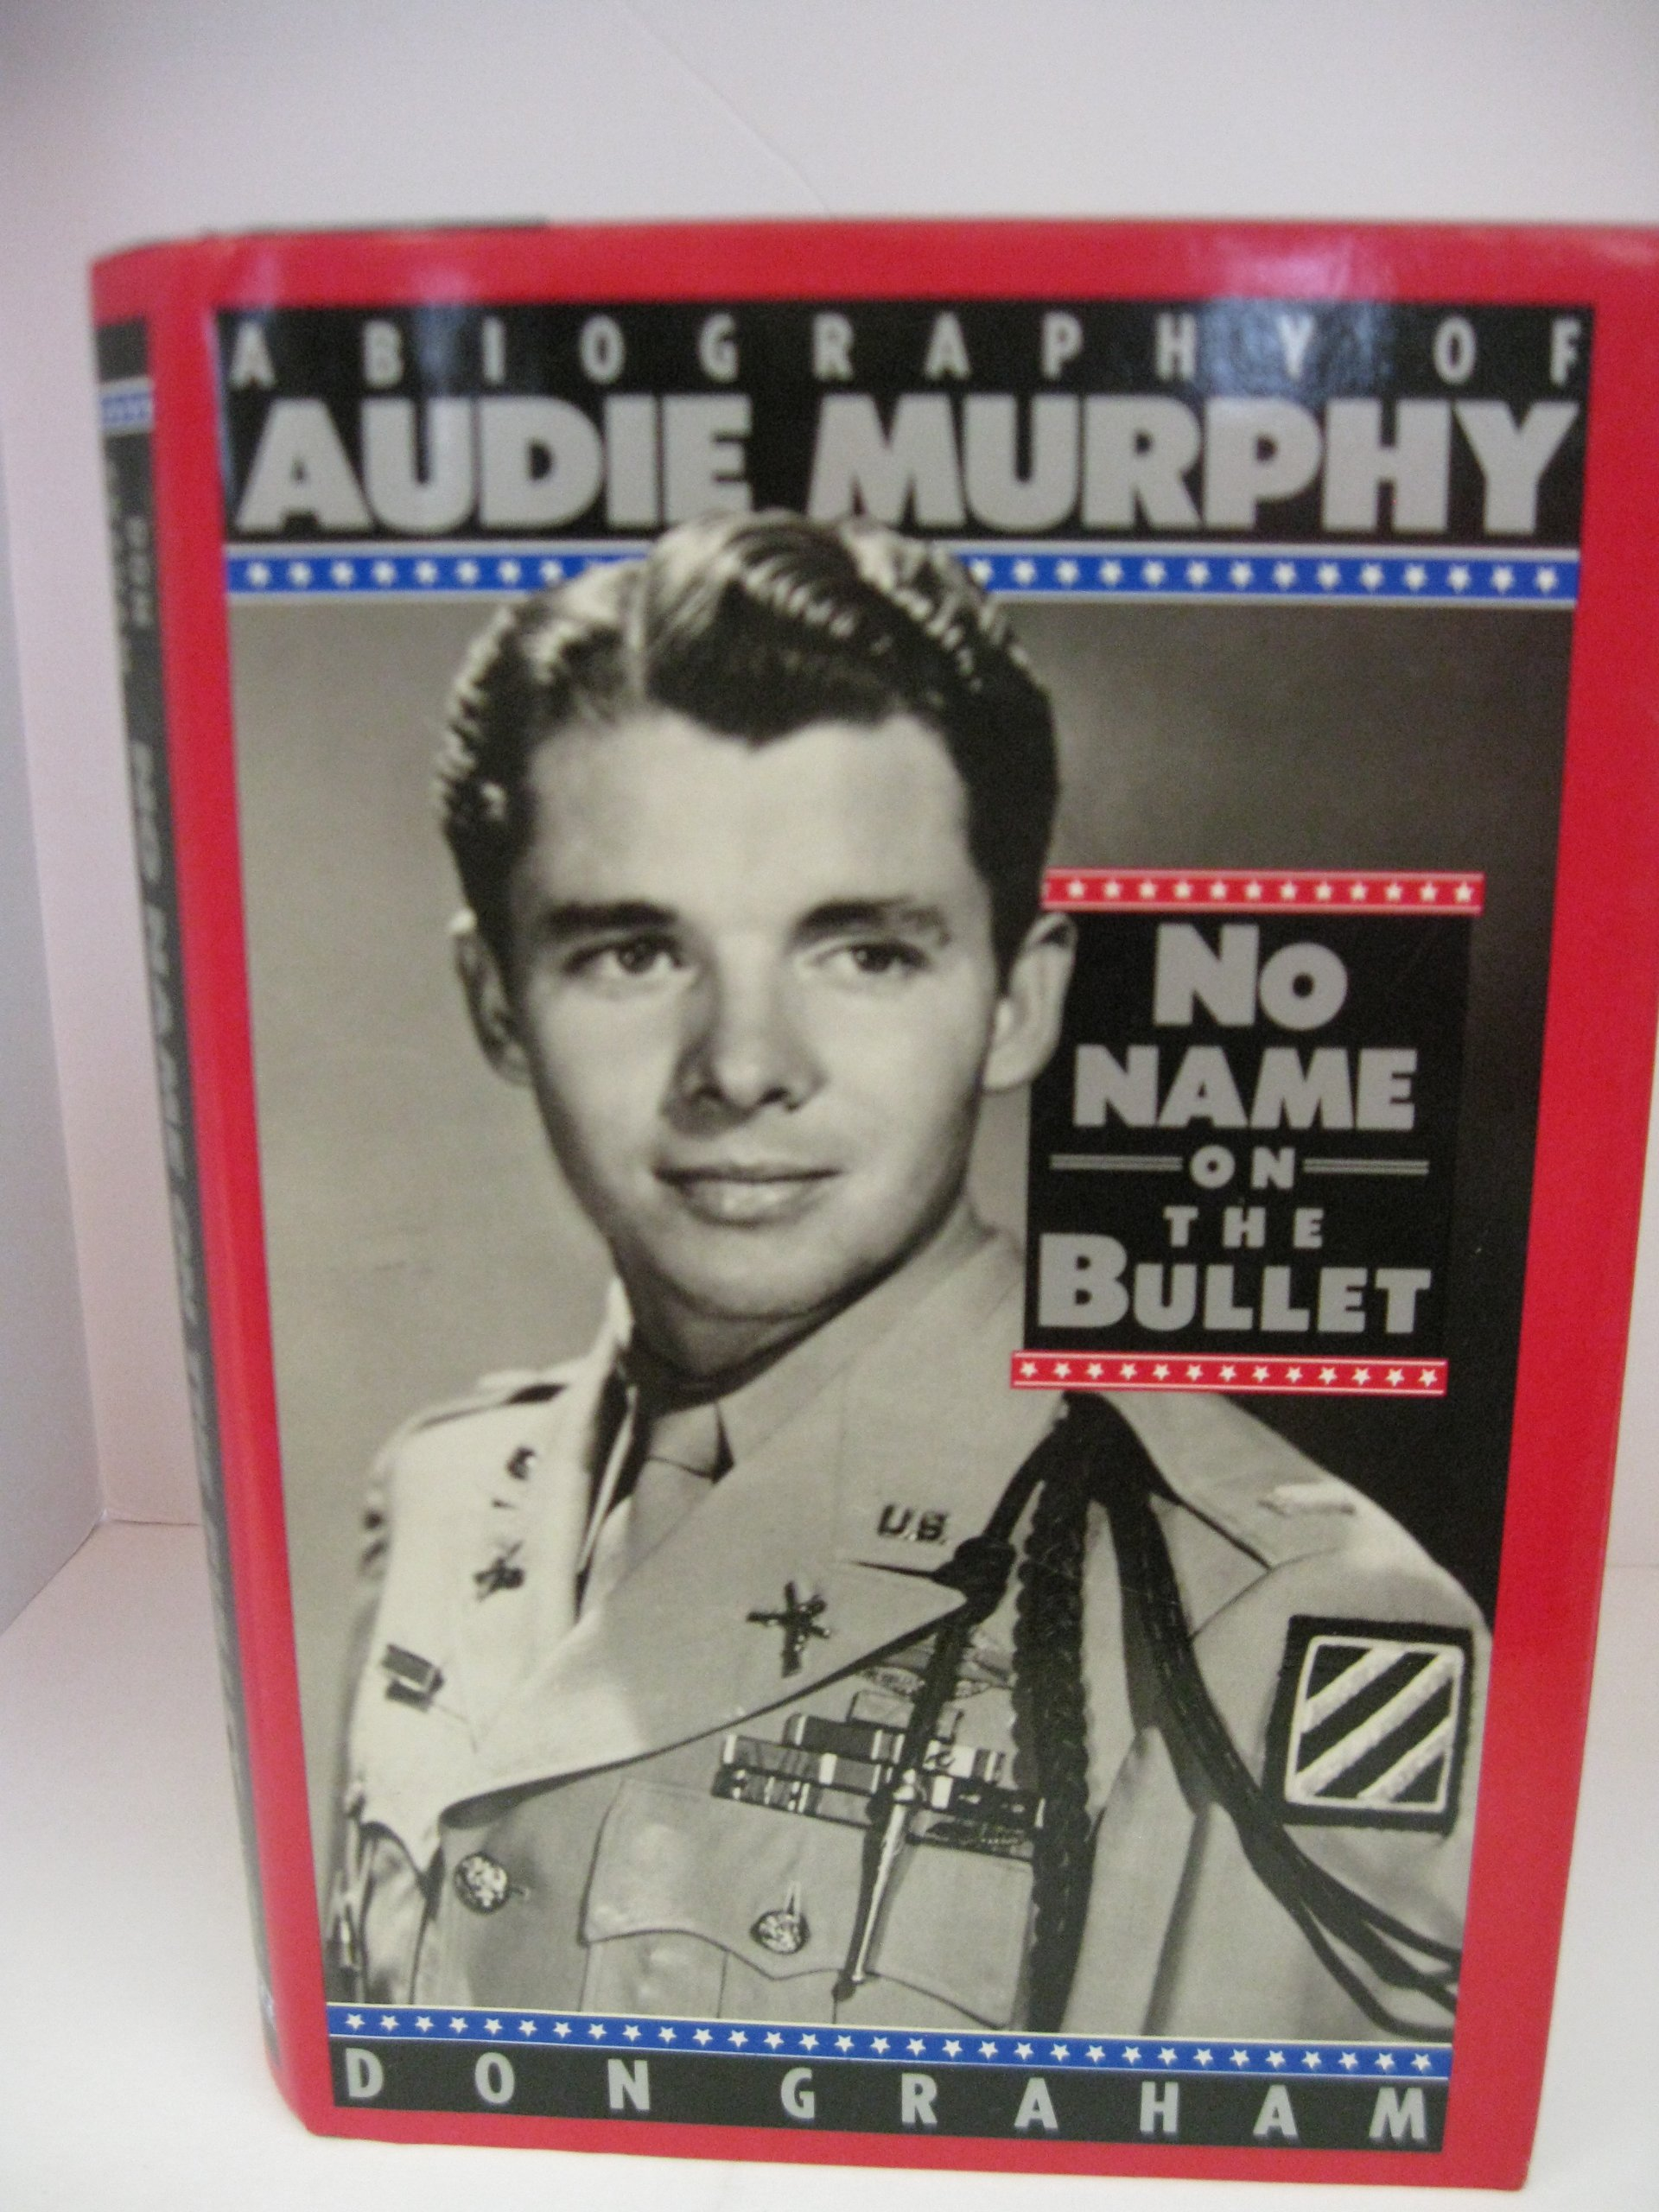 audie murphy medal of honor